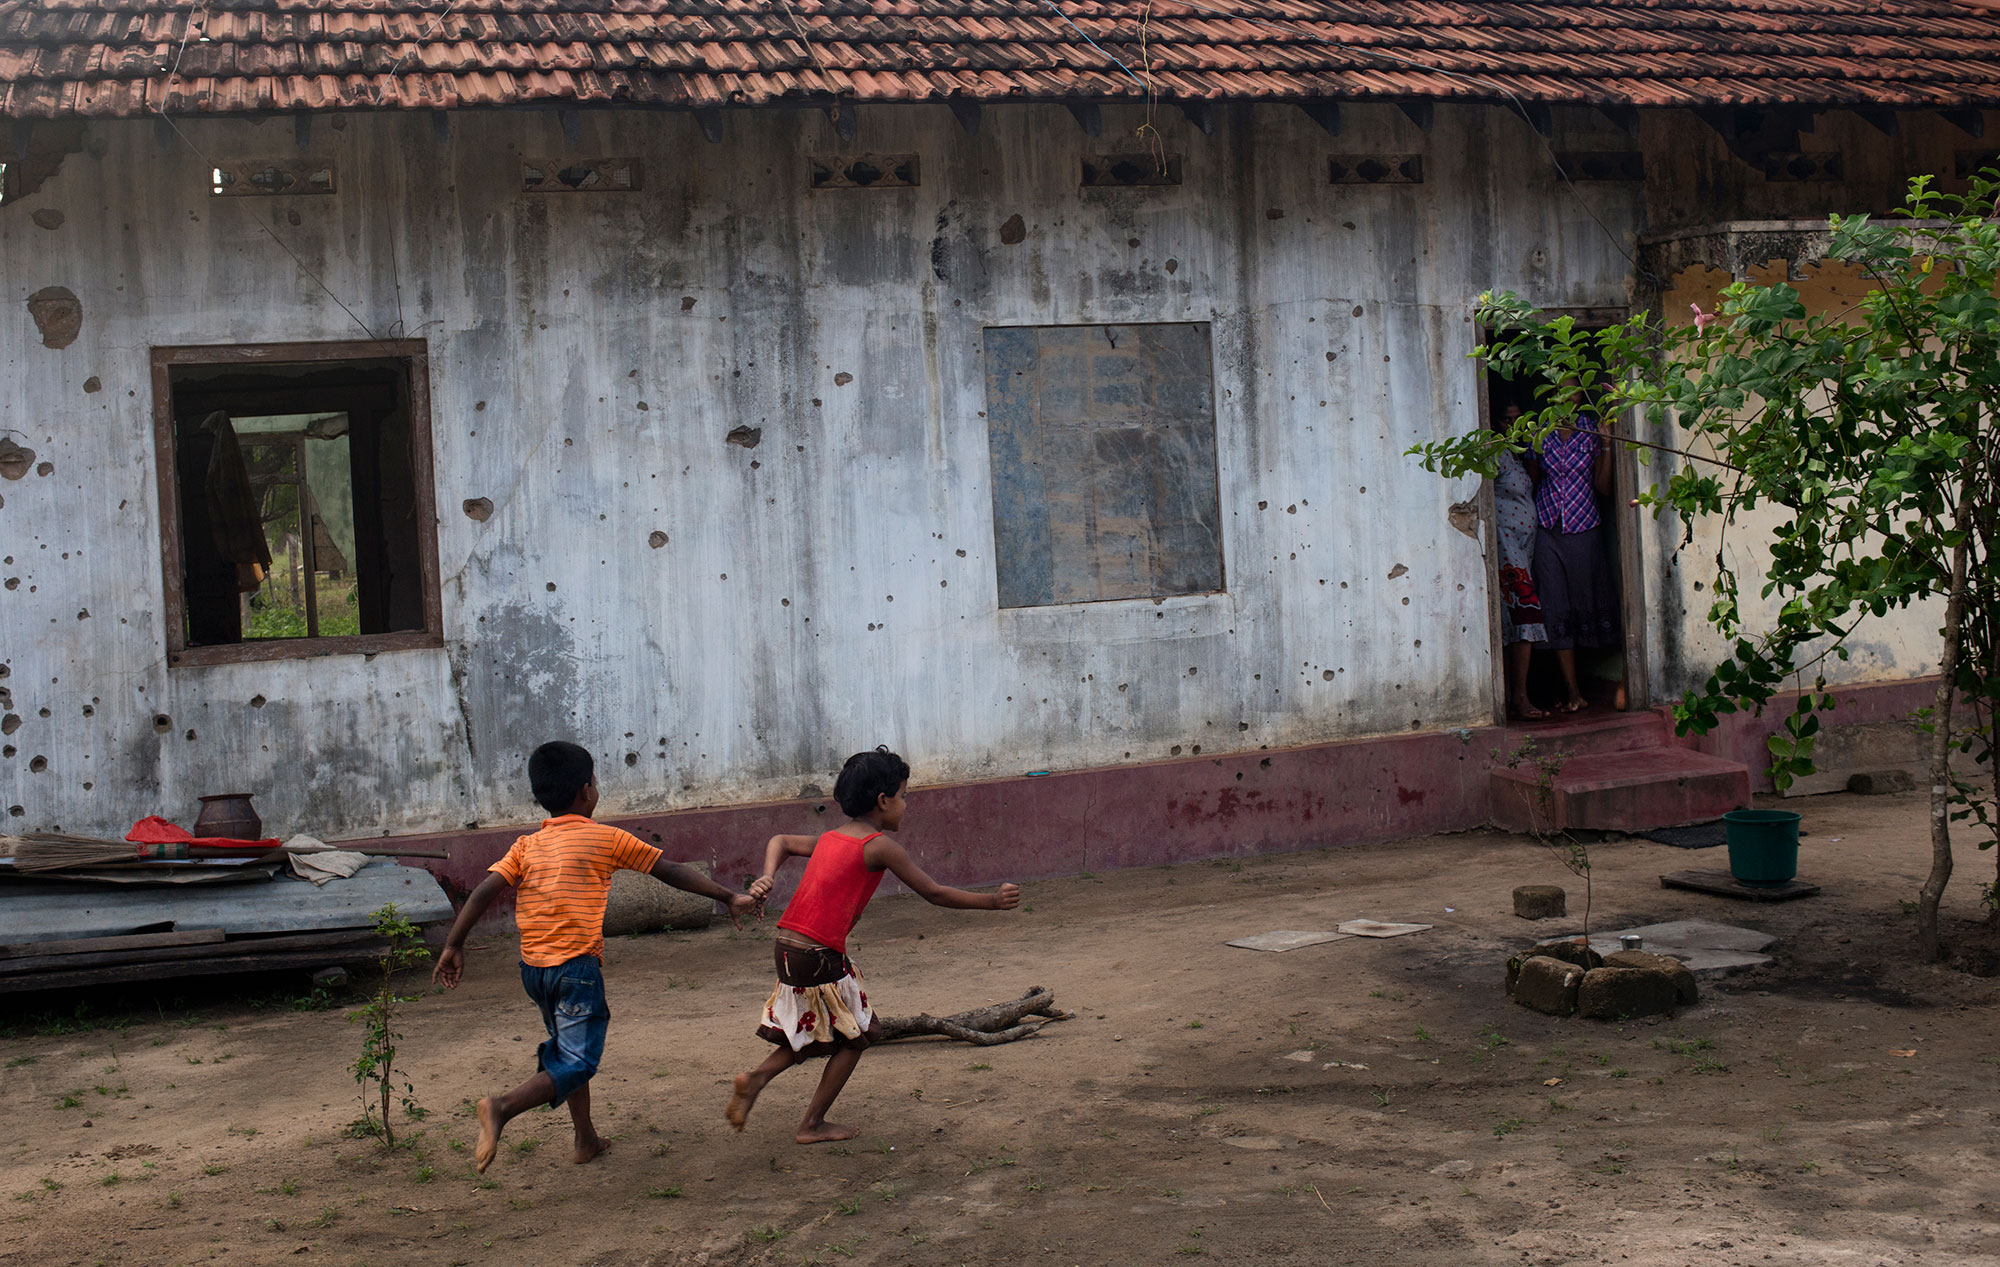 Children play outside their bullet-riddled home in Mullivaikal, which is where the final battle of Sri Lanka's civil war took place. [Miguel Candela/Al Jazeera]